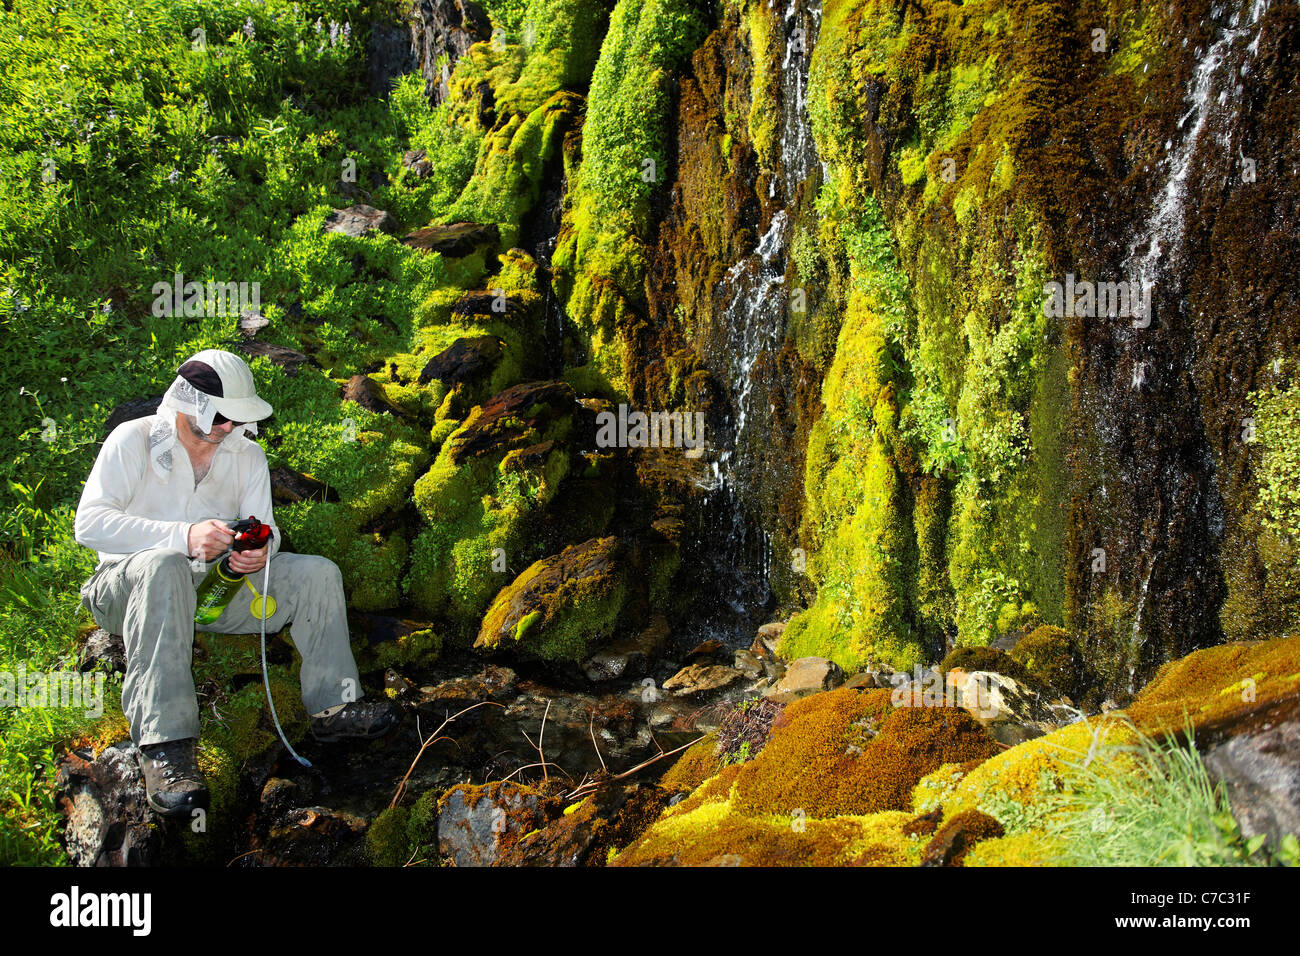 Hiker on Bailey Range Traverse pumping water from waterfall, Olympic Mountains, Olympic National Park, Washington - Stock Image